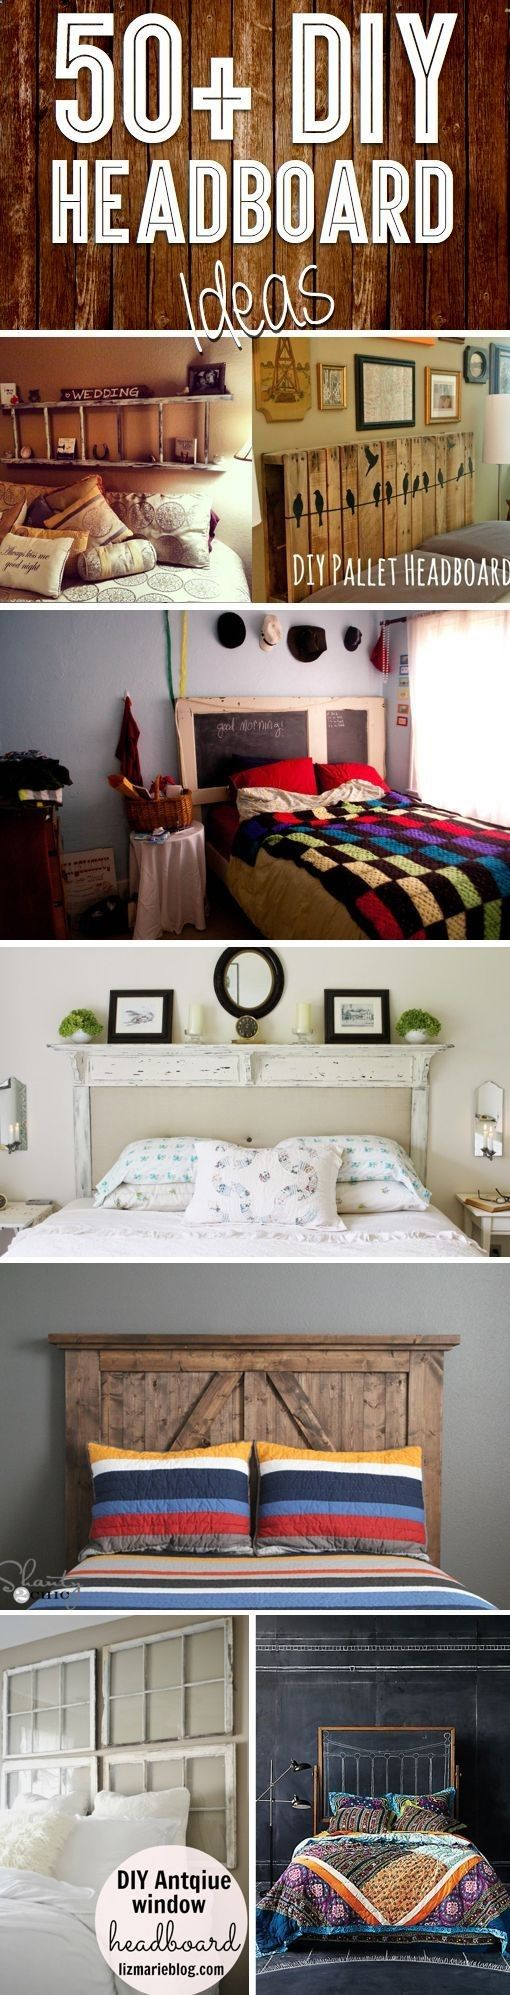 best guest room images on pinterest headboard ideas home ideas